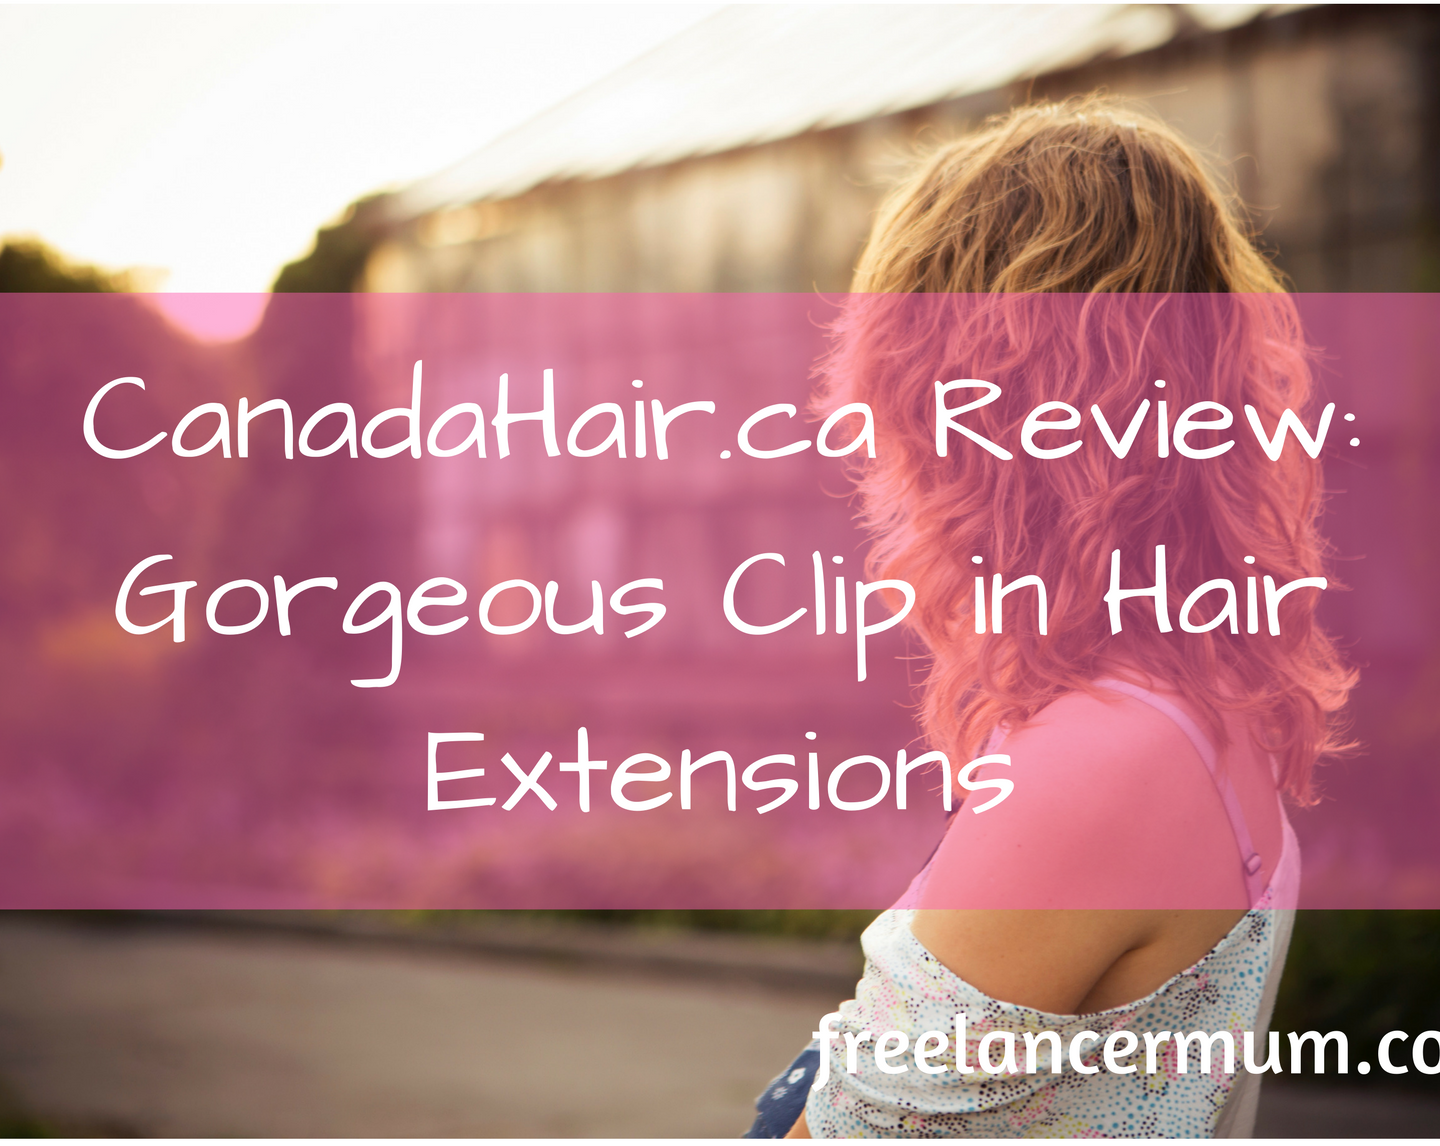 CanadaHair.ca Review: Clip in Hair Extensions to Make Your Hair Look Gorgeous